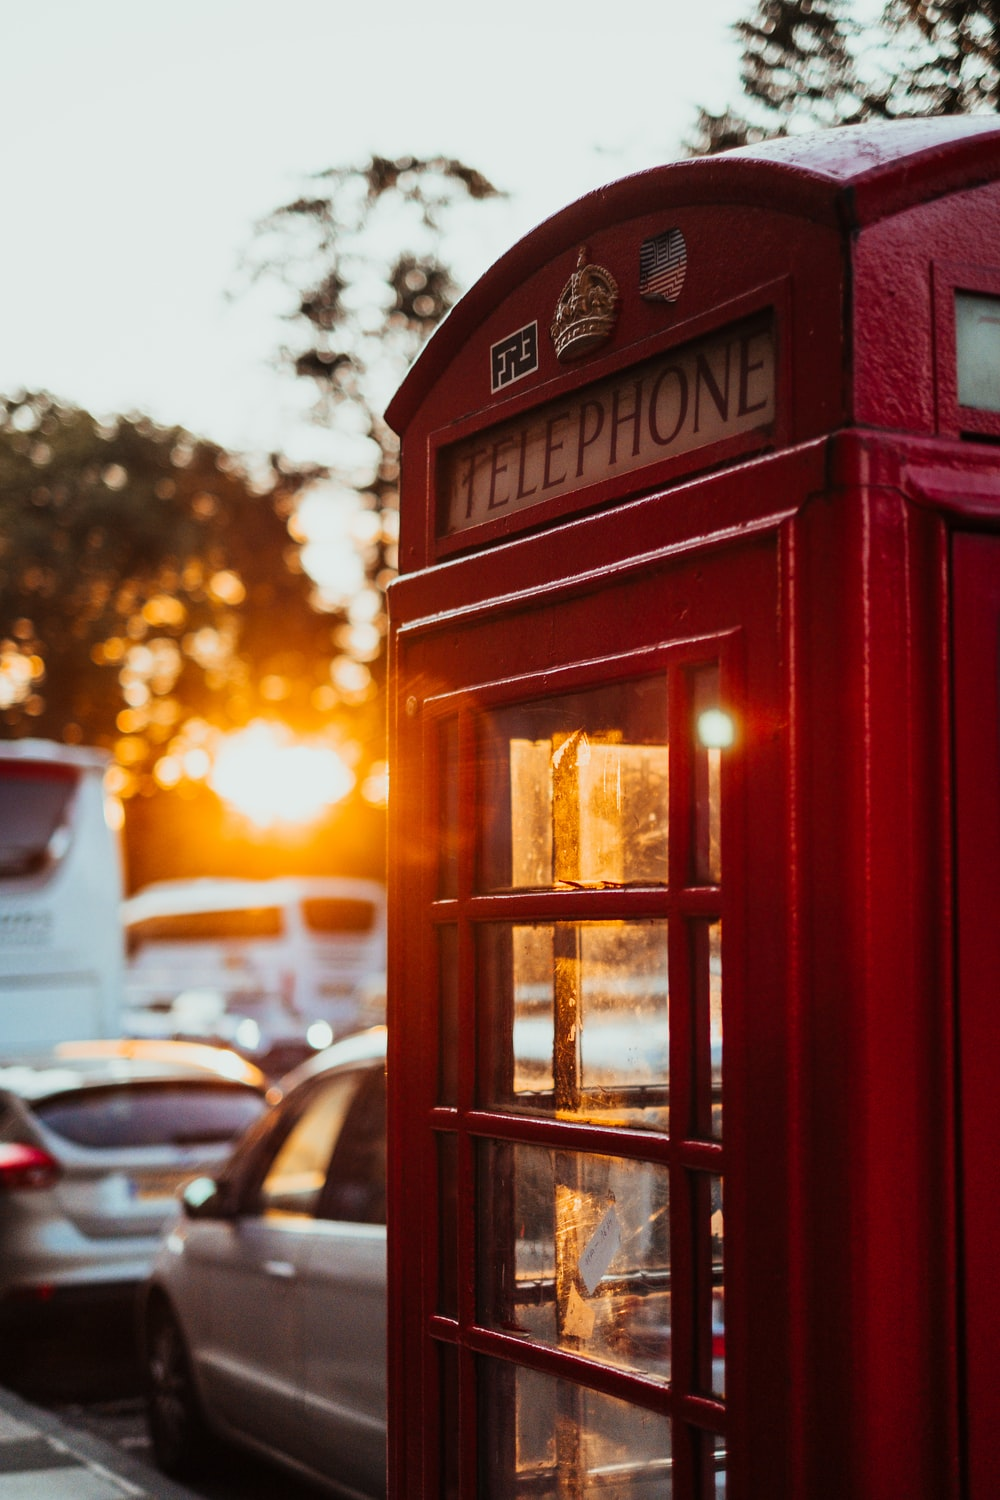 selective focus photography of red telephone booth near car